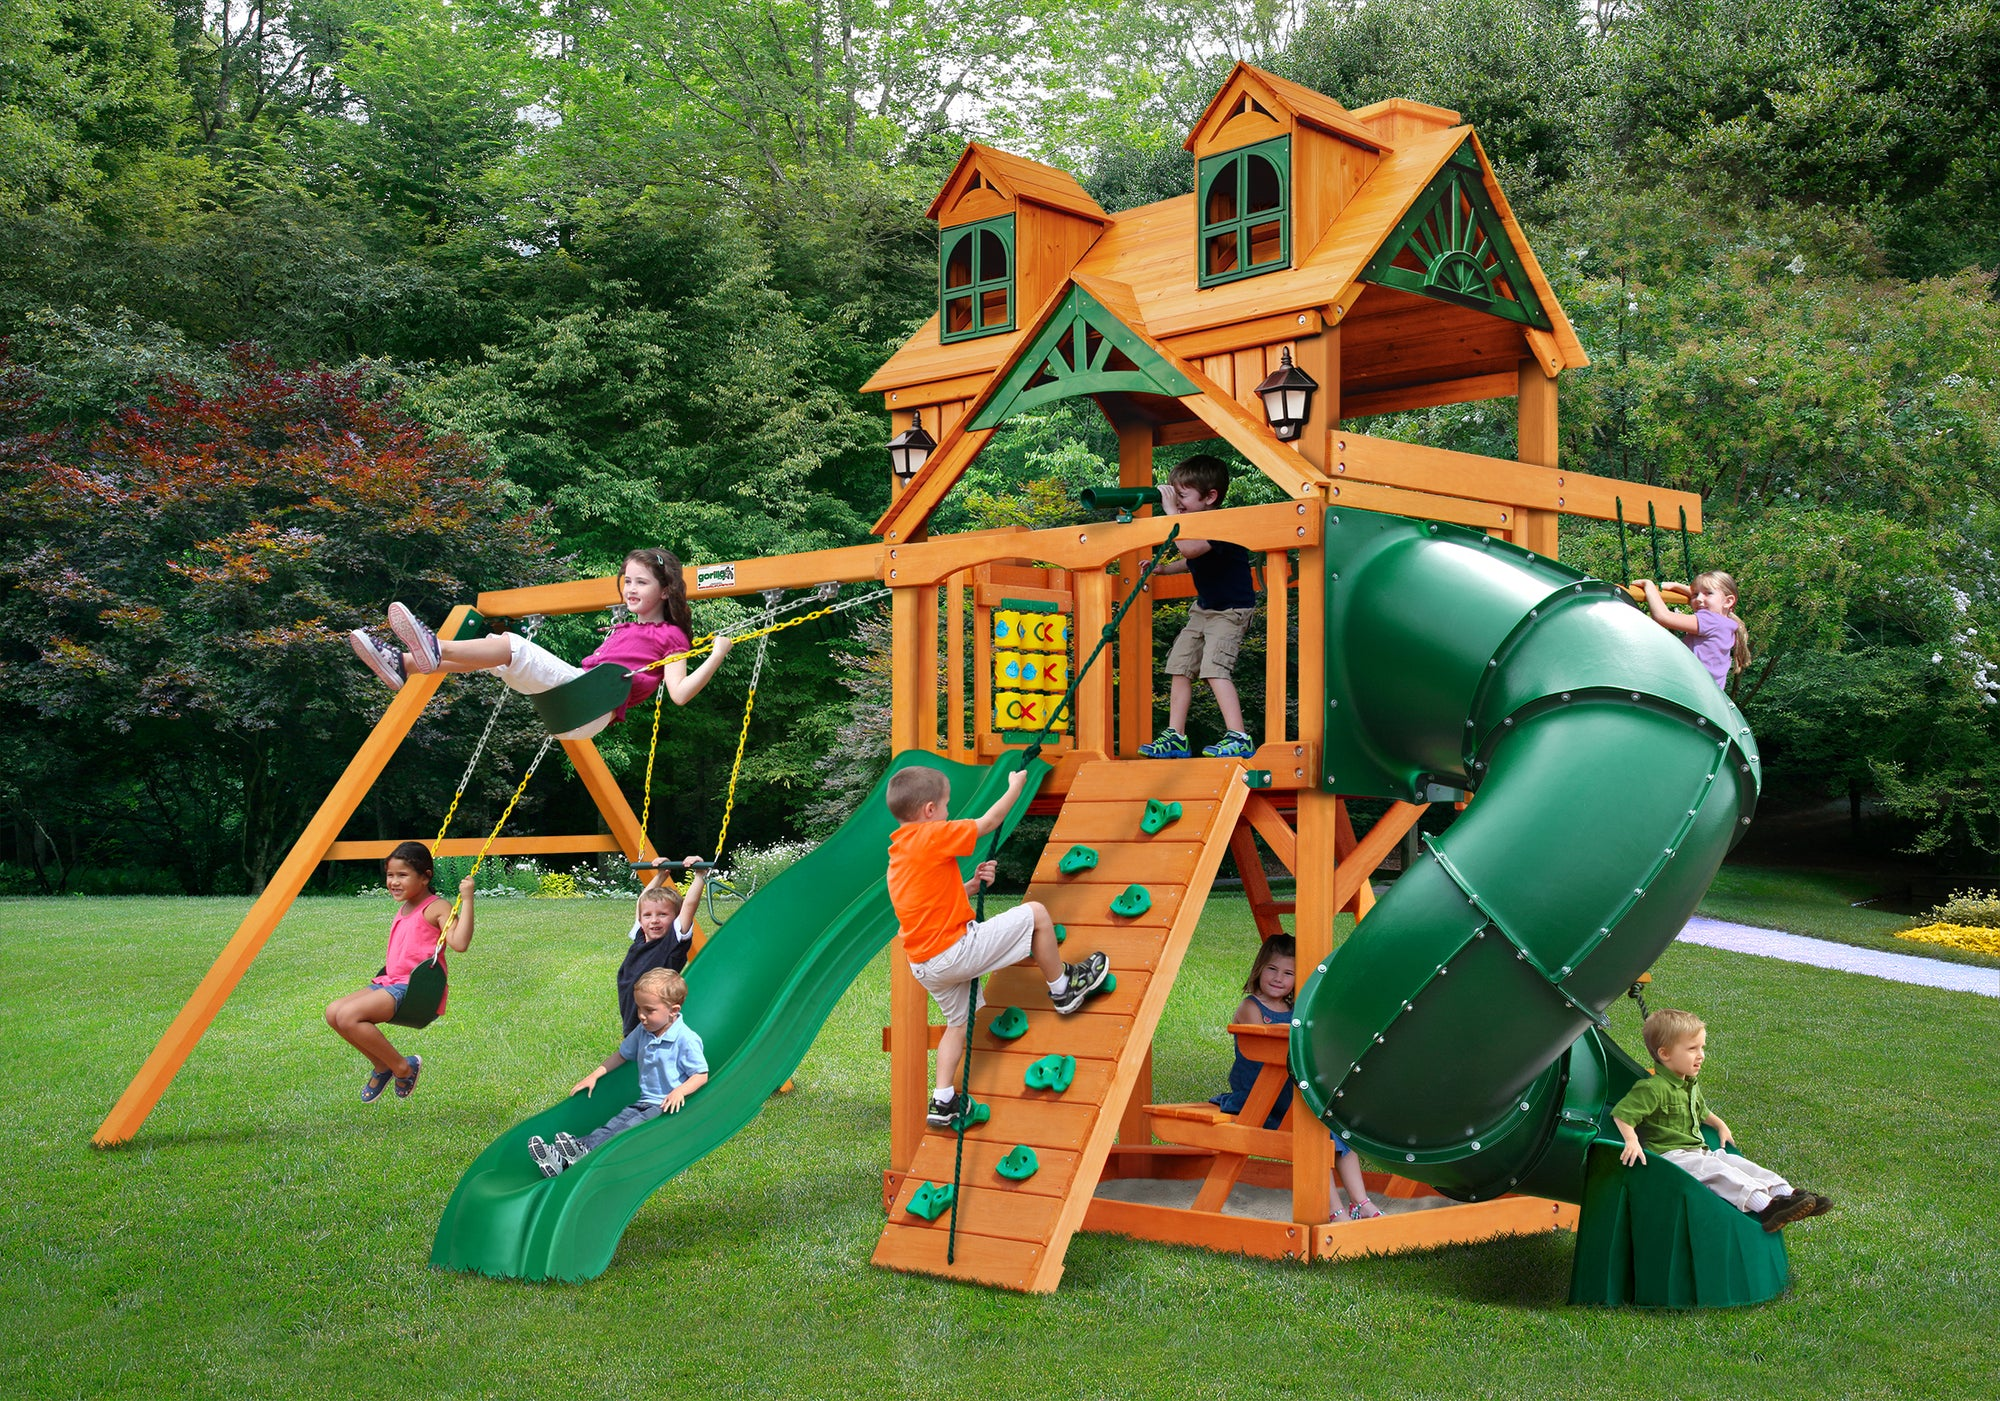 Gorilla Playsets Mountaineer Malibu Roof Swing Set - Swing Set Paradise